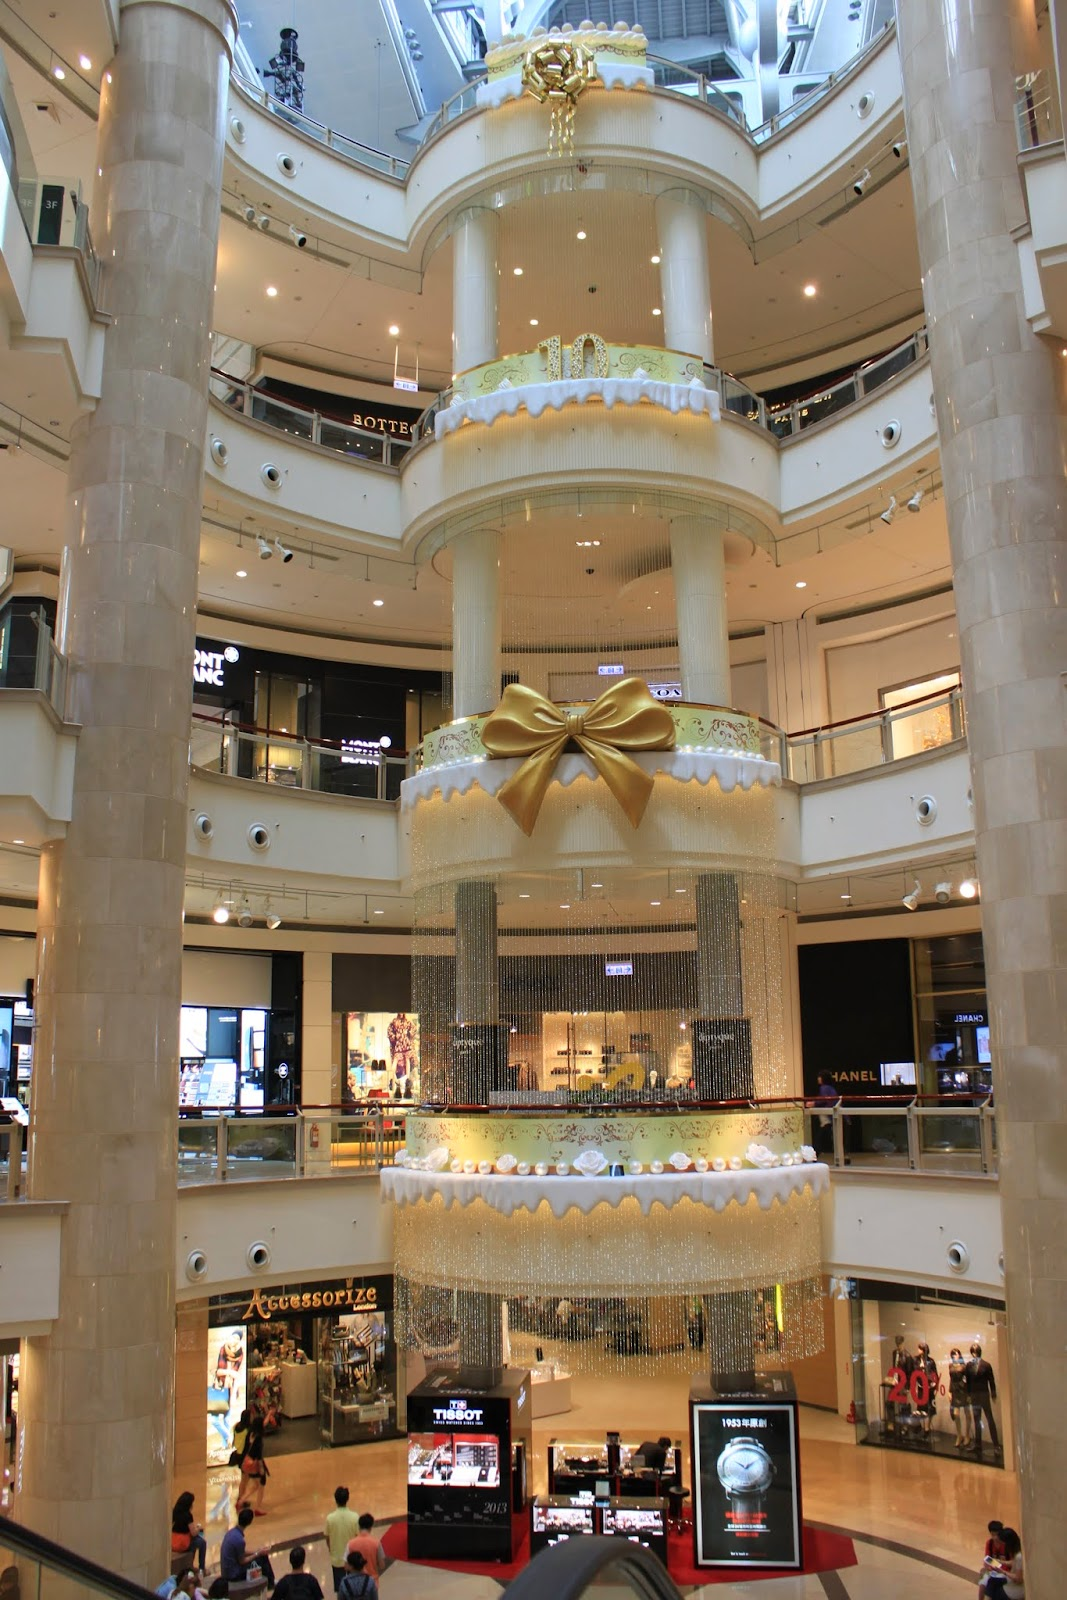 Taipei 101 Shopping Mall in Taipei, Taiwan